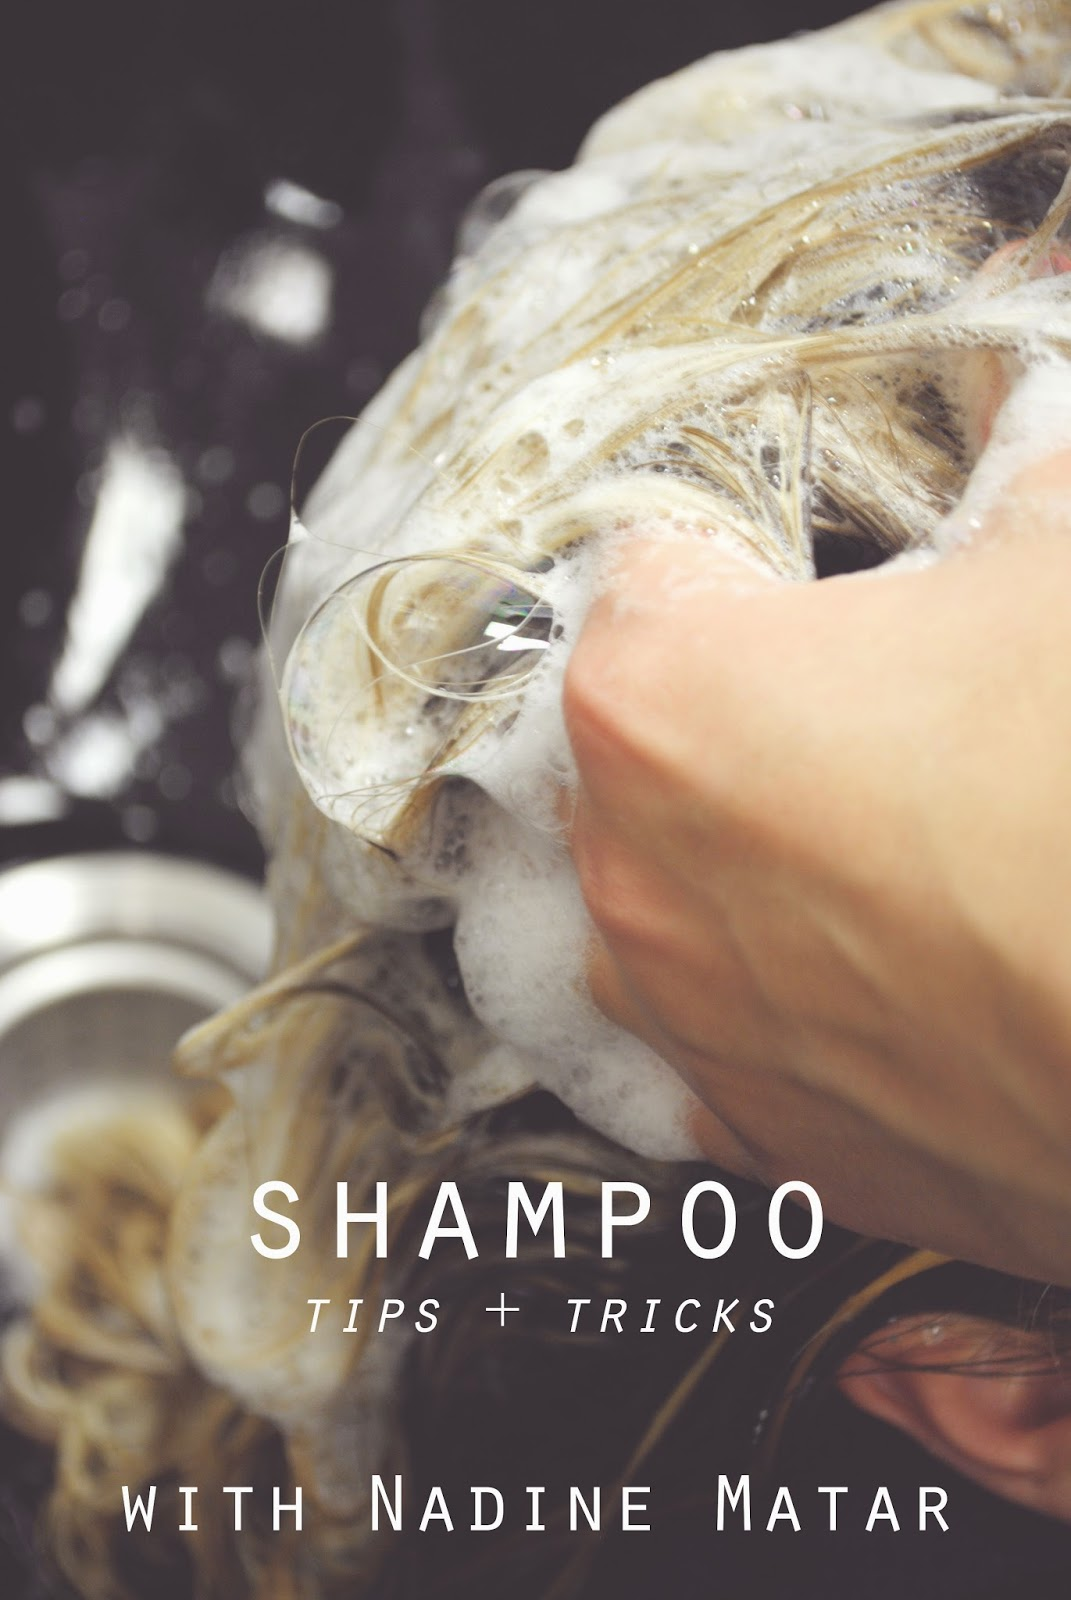 shampoo, how to, best shampoos, pr at partners, nadine matar